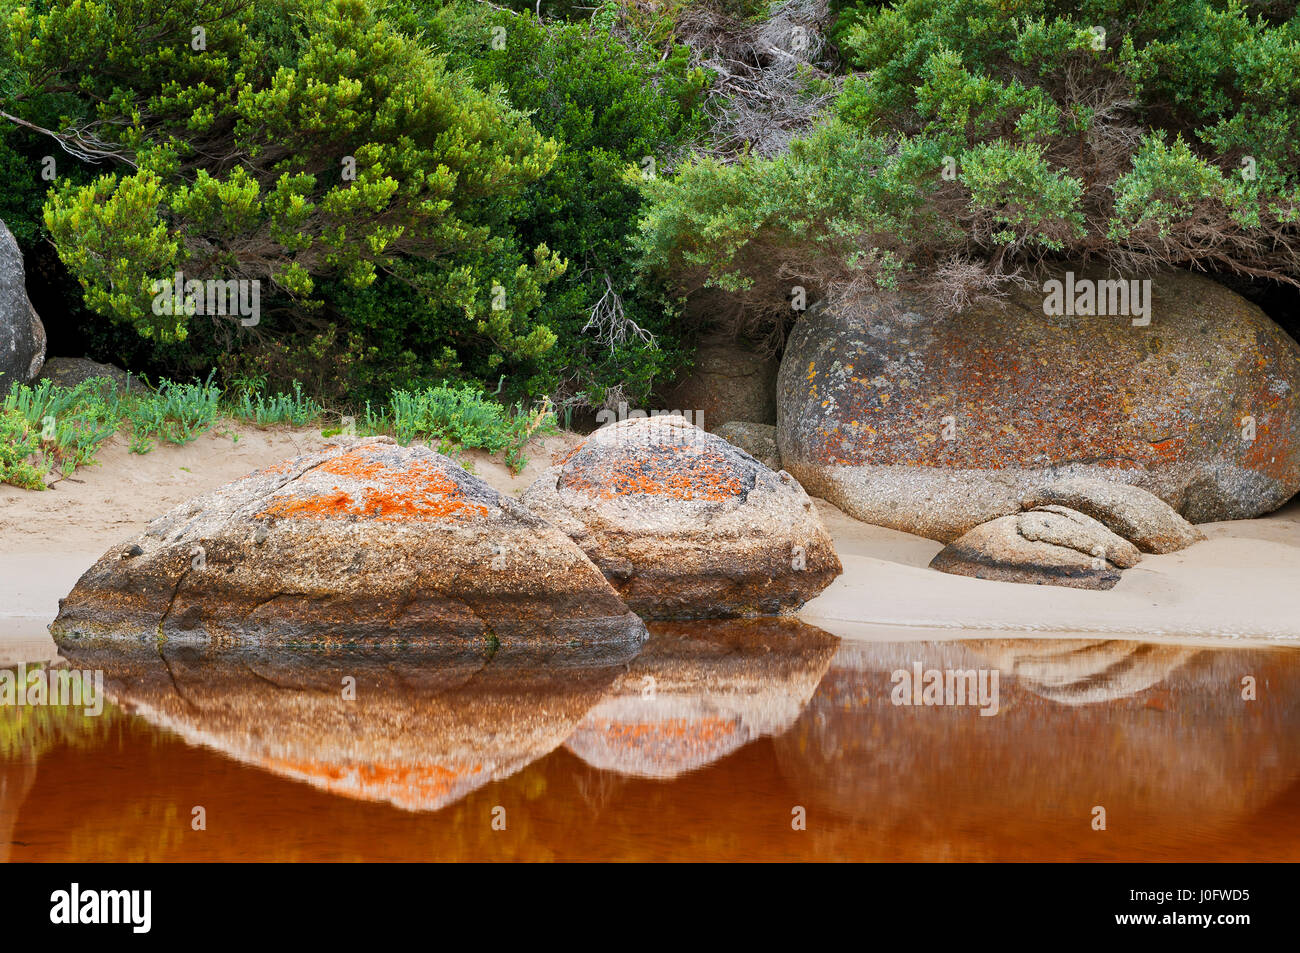 Lichen covered Rocks at Tidal River in Wilsons Promontory National Park. - Stock Image